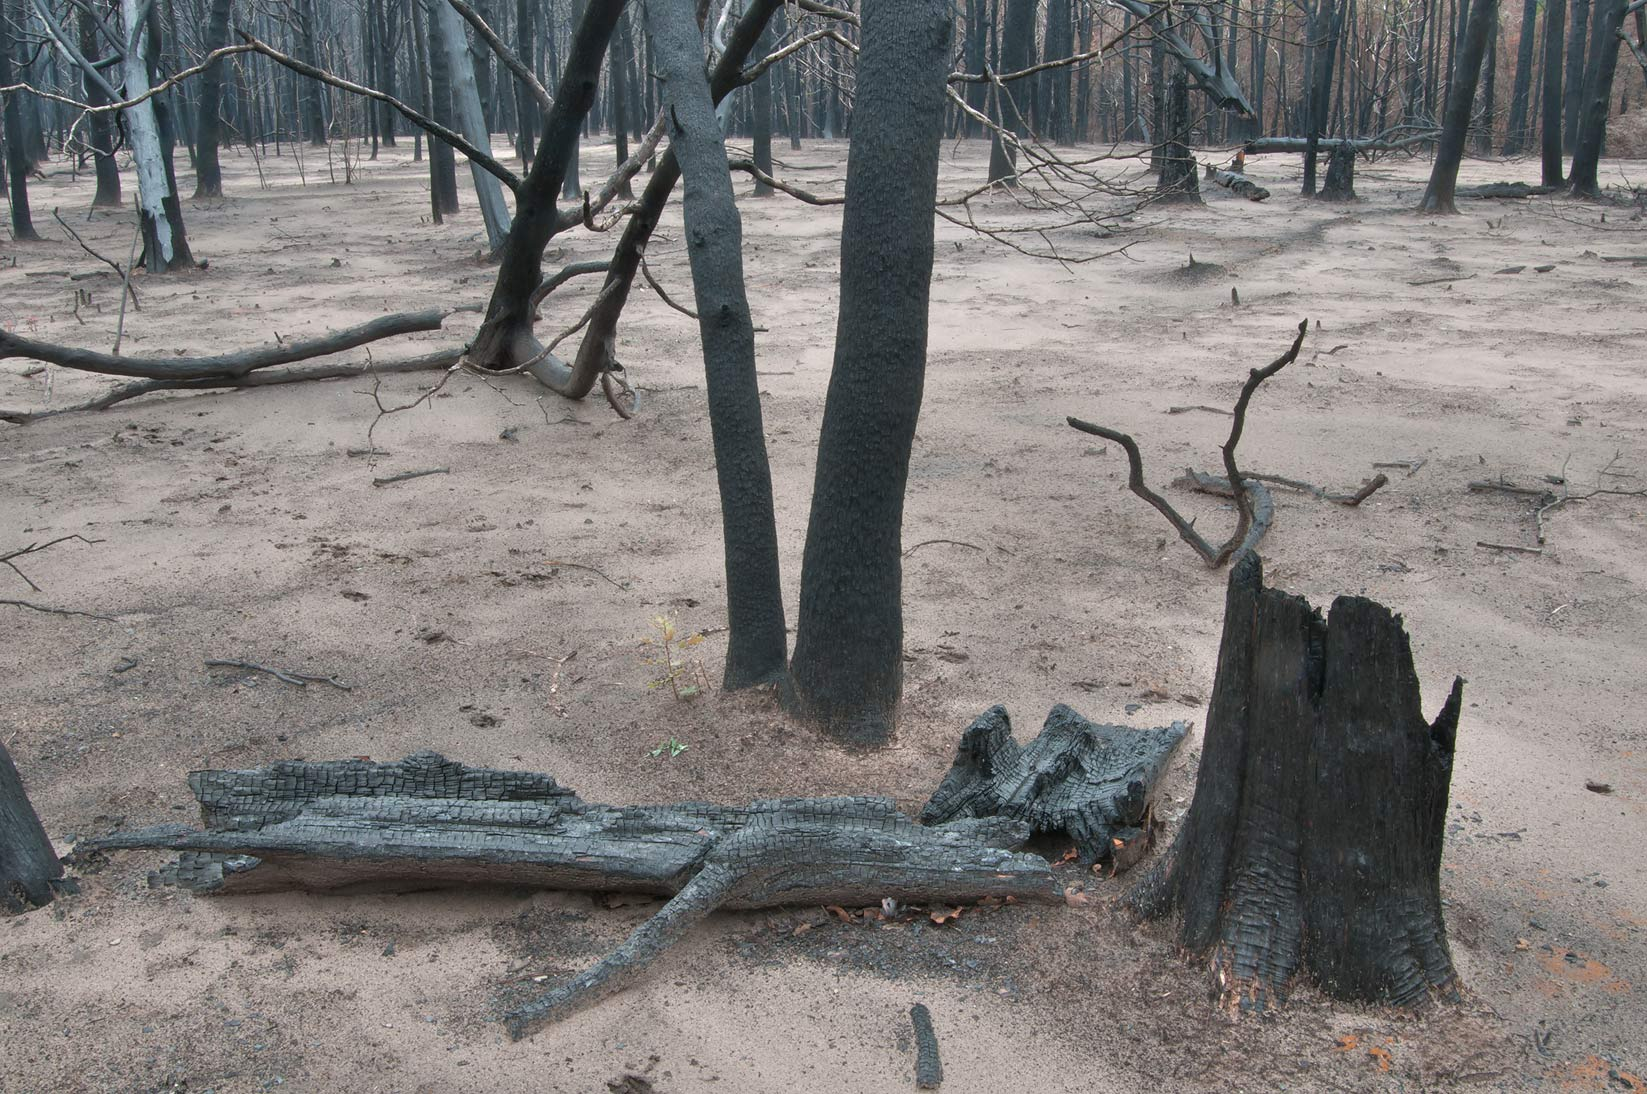 Charred remains of trees in Bastrop State Park. Bastrop, Texas